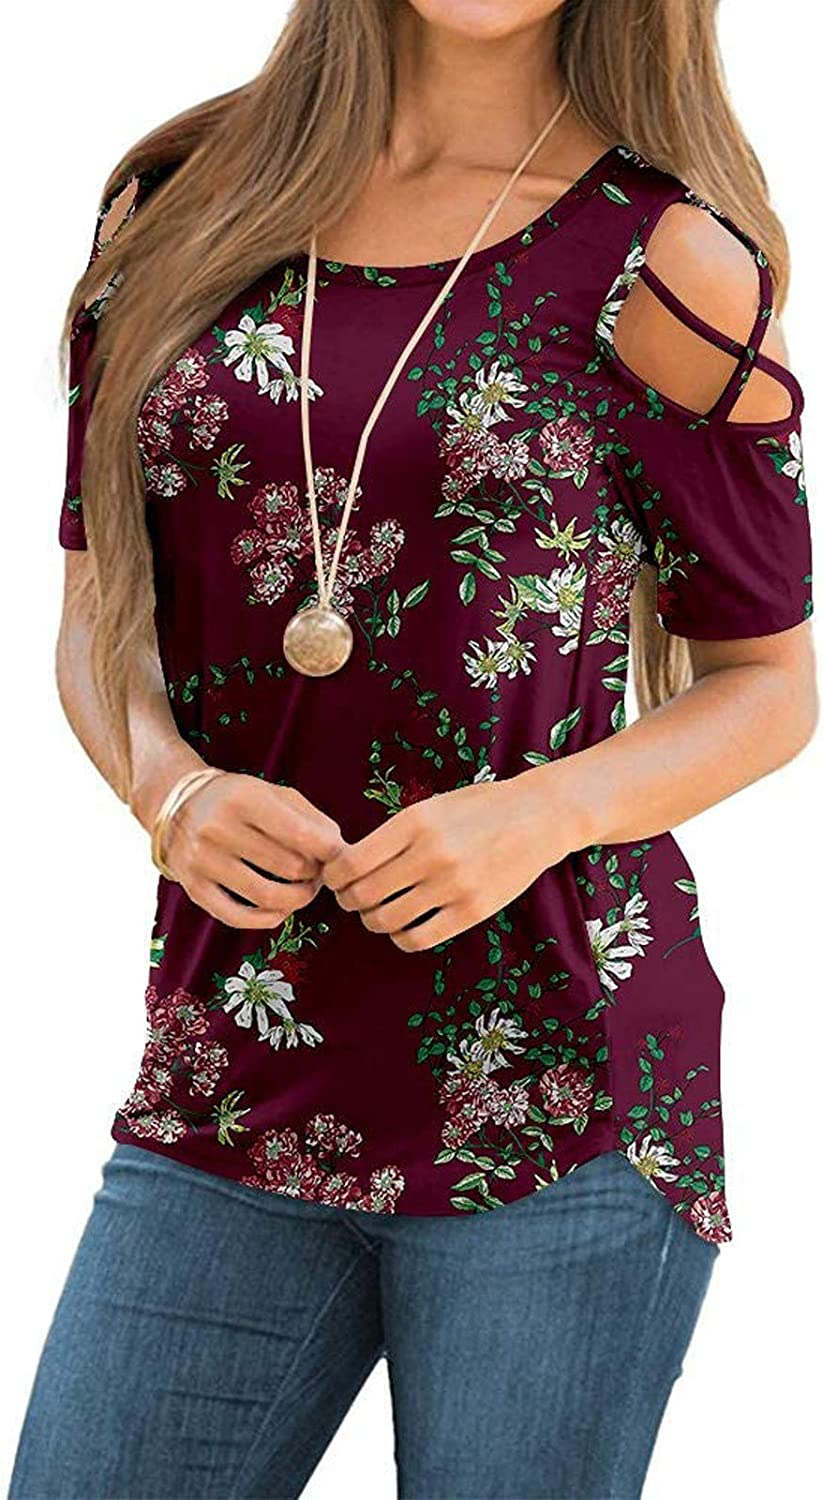 Womens Summer Tops,Womens Cold Shoulder Tops for Women Plus Size Print Short Sleeve Flowy Tops Casual Summer T Shirts